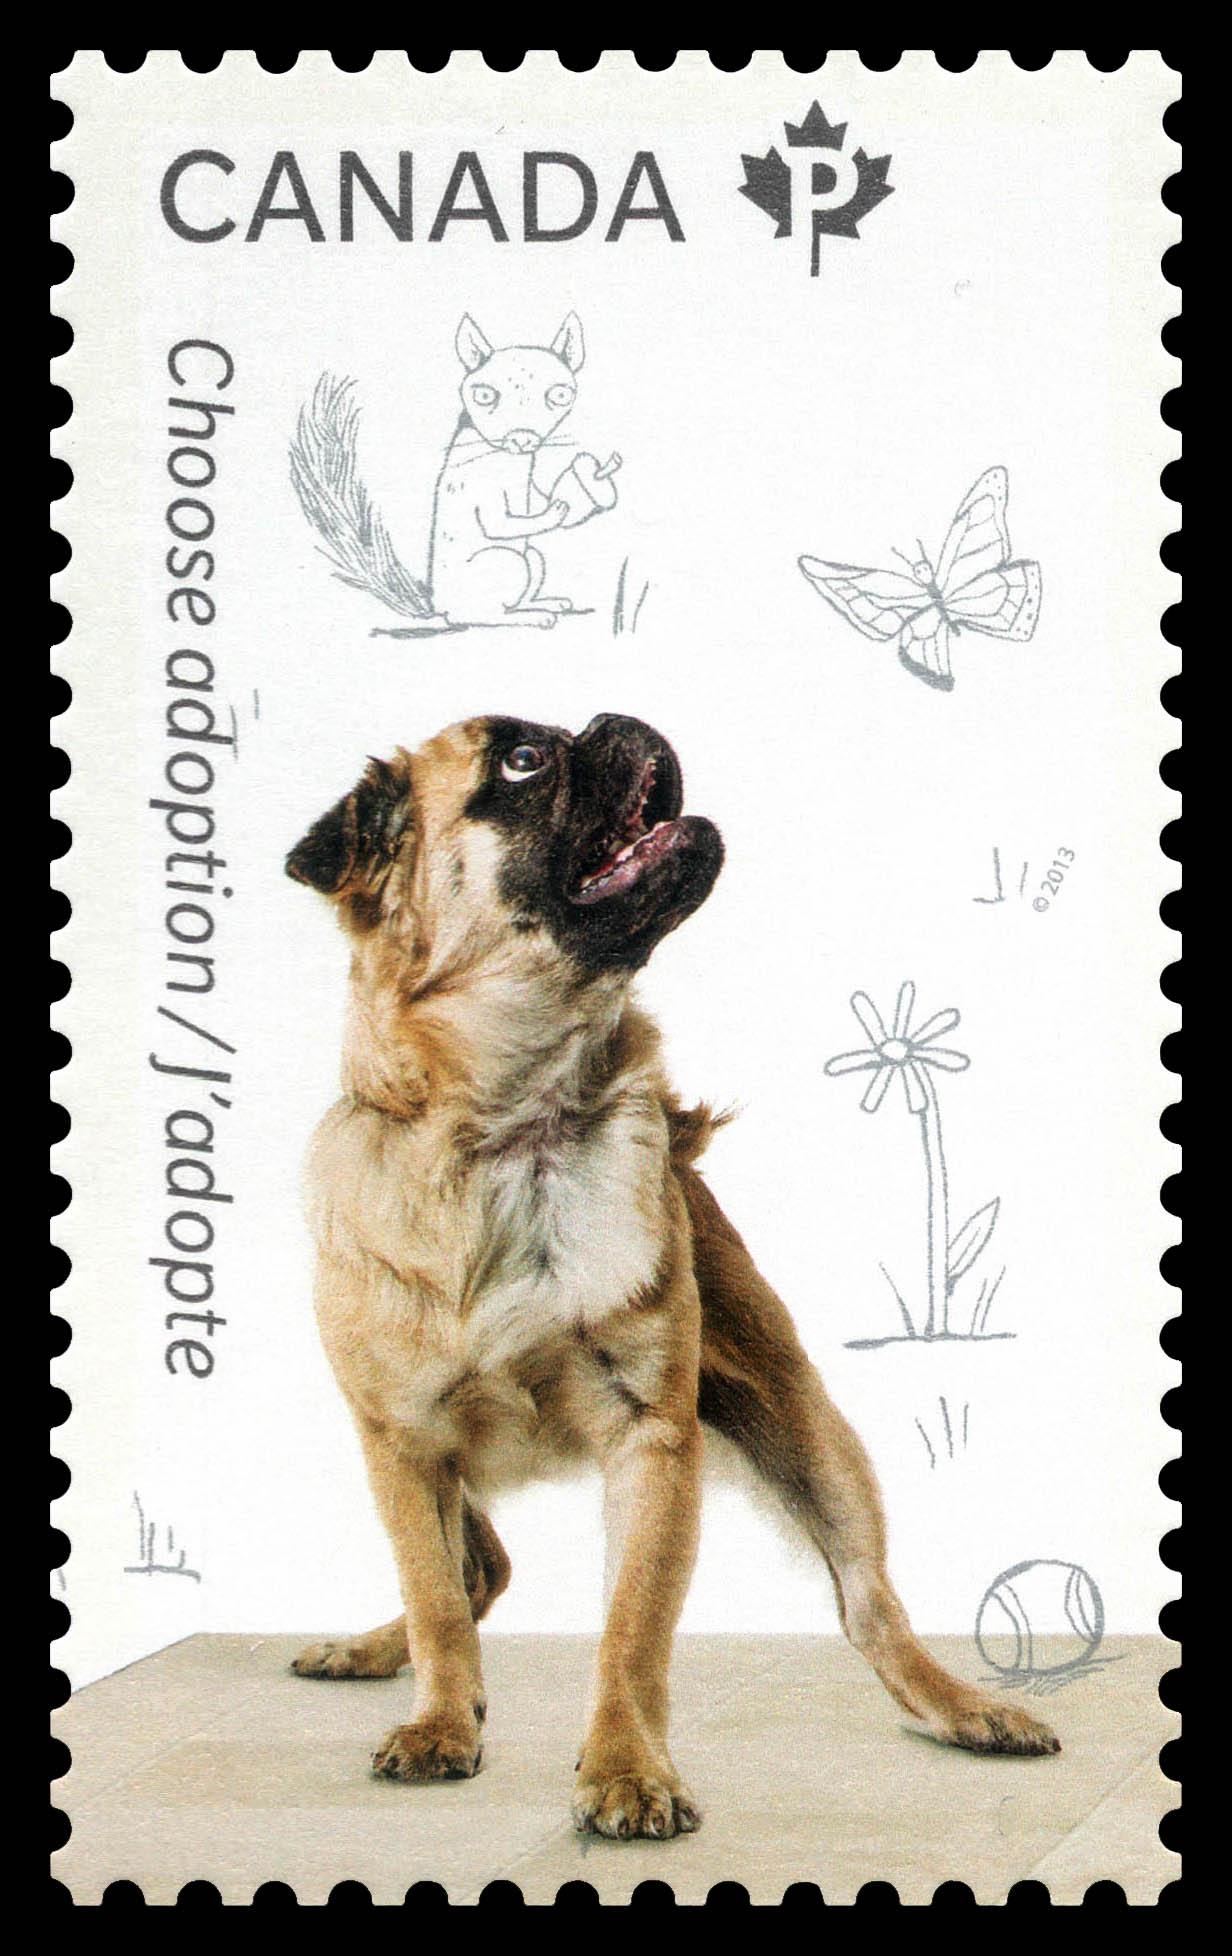 Adopt a Dog Canada Postage Stamp